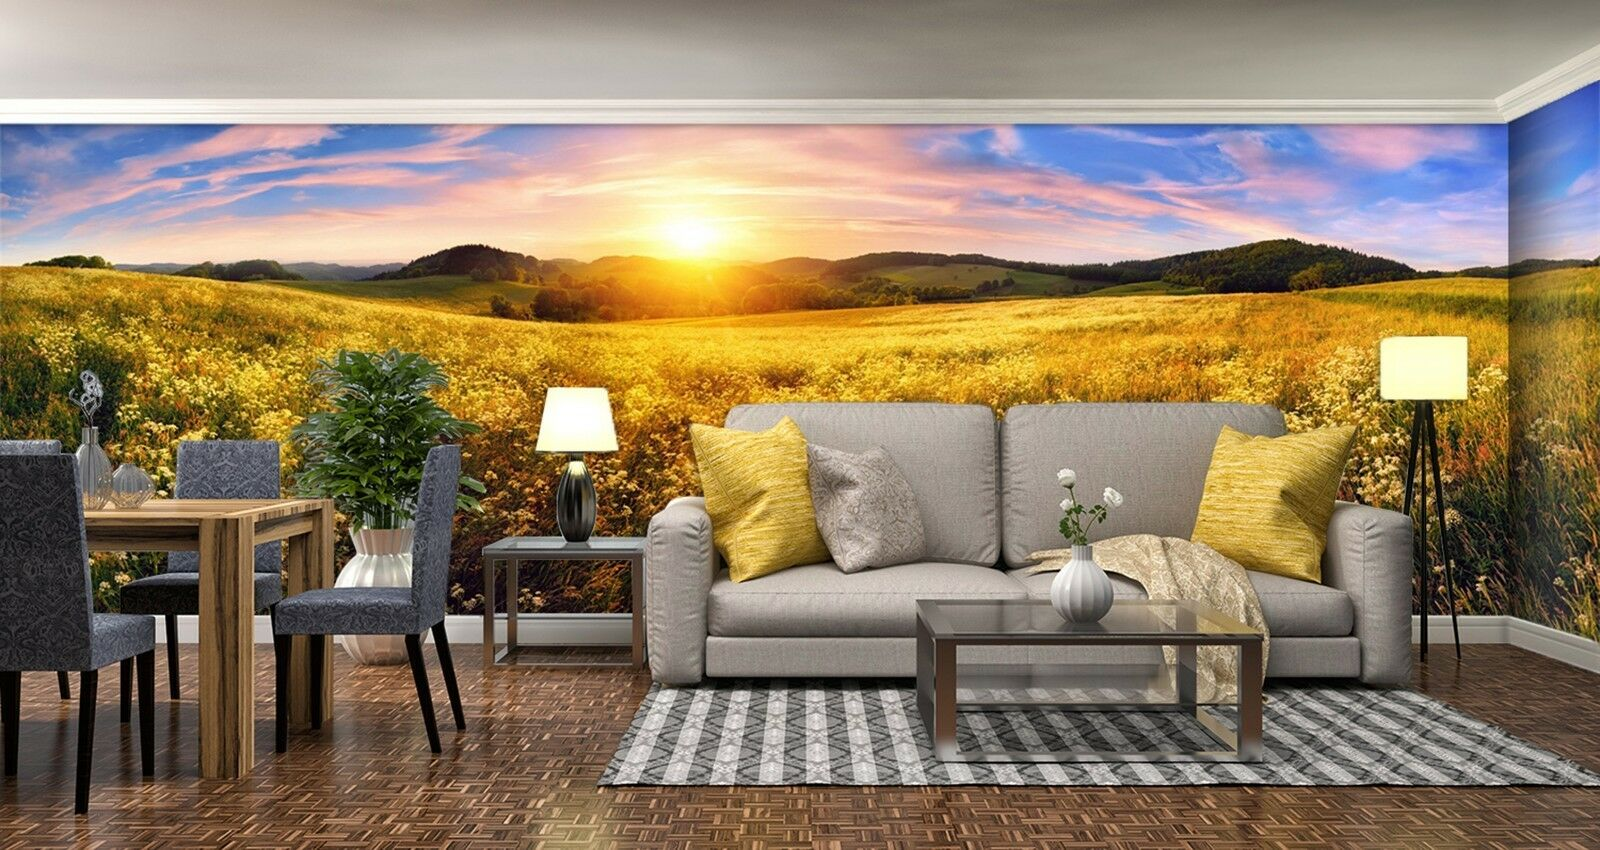 3D sunrise sky field Wall Paper Print Decal Decal Decal Wall Deco Indoor wall Mural 65bd99